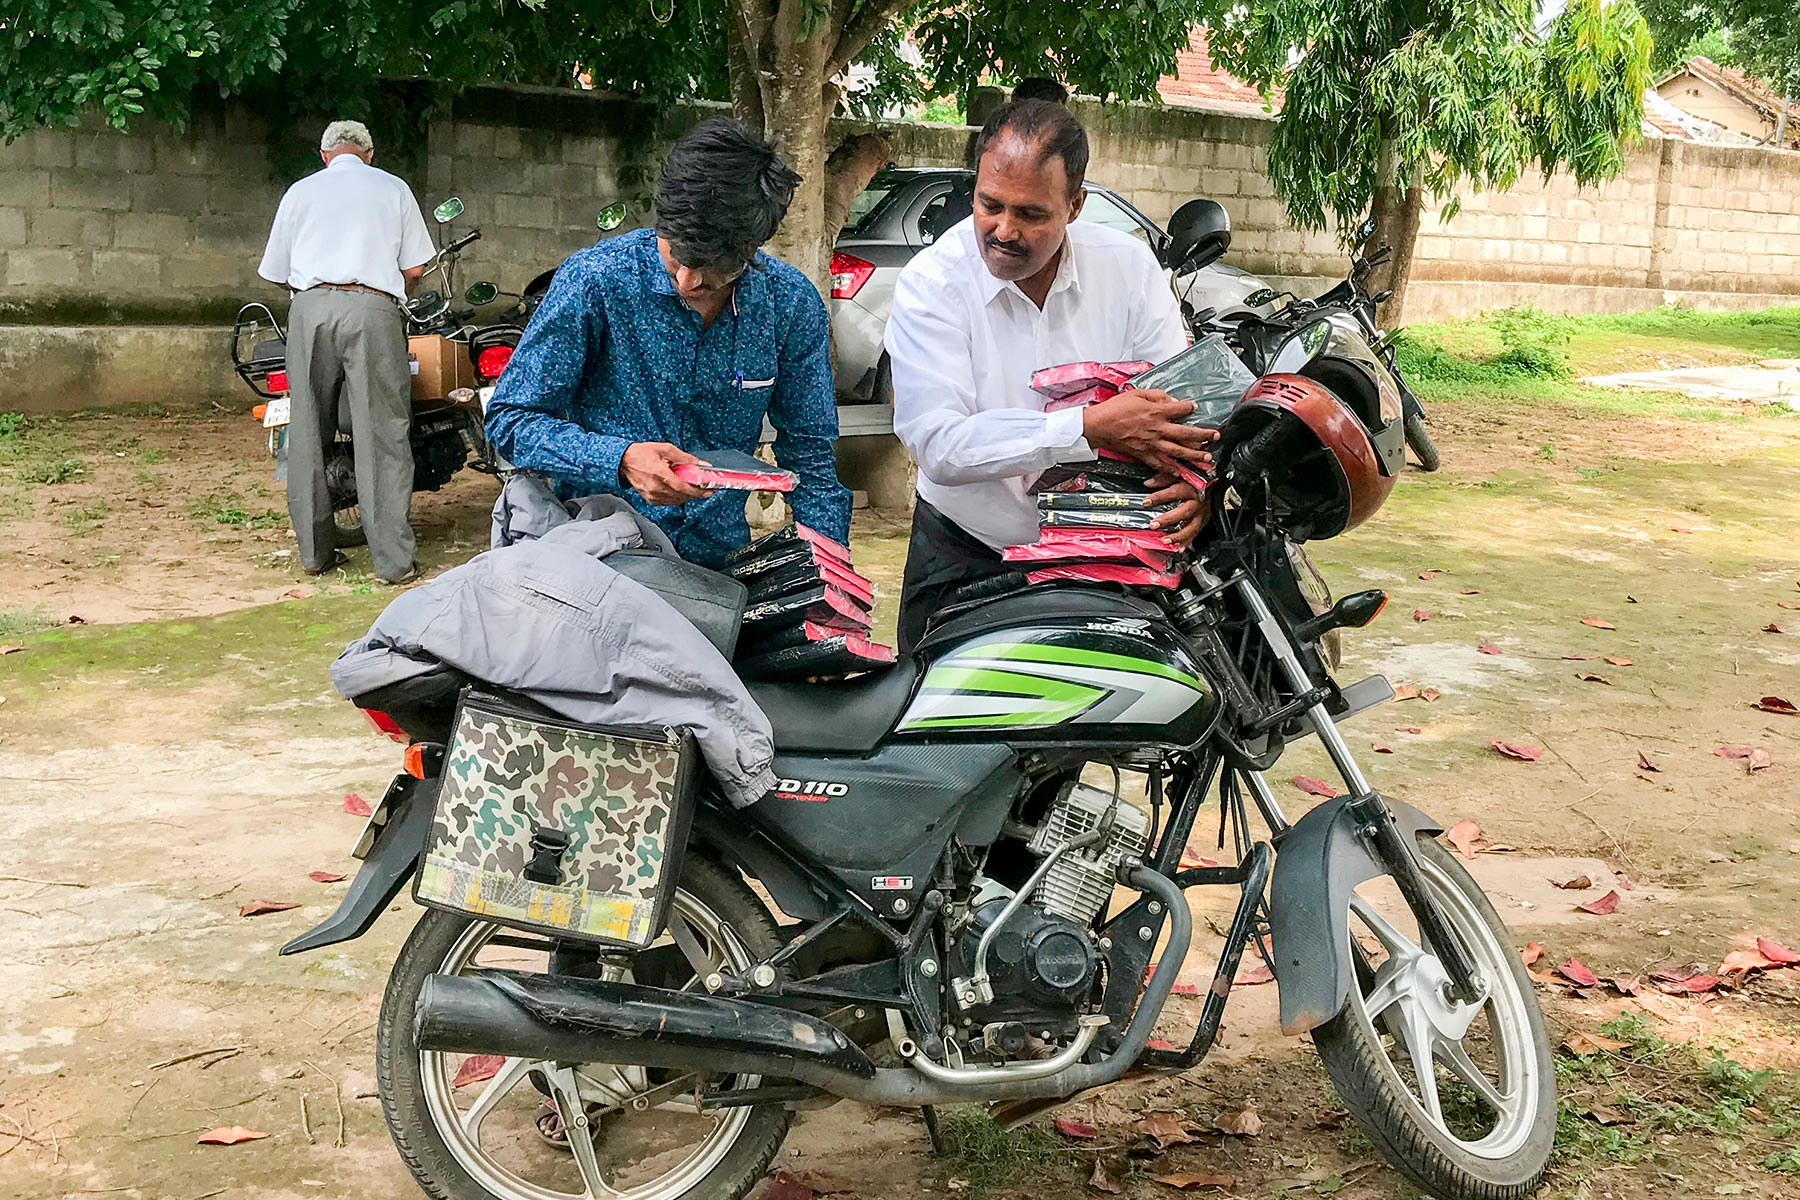 Men unloading bibles from motorcycle